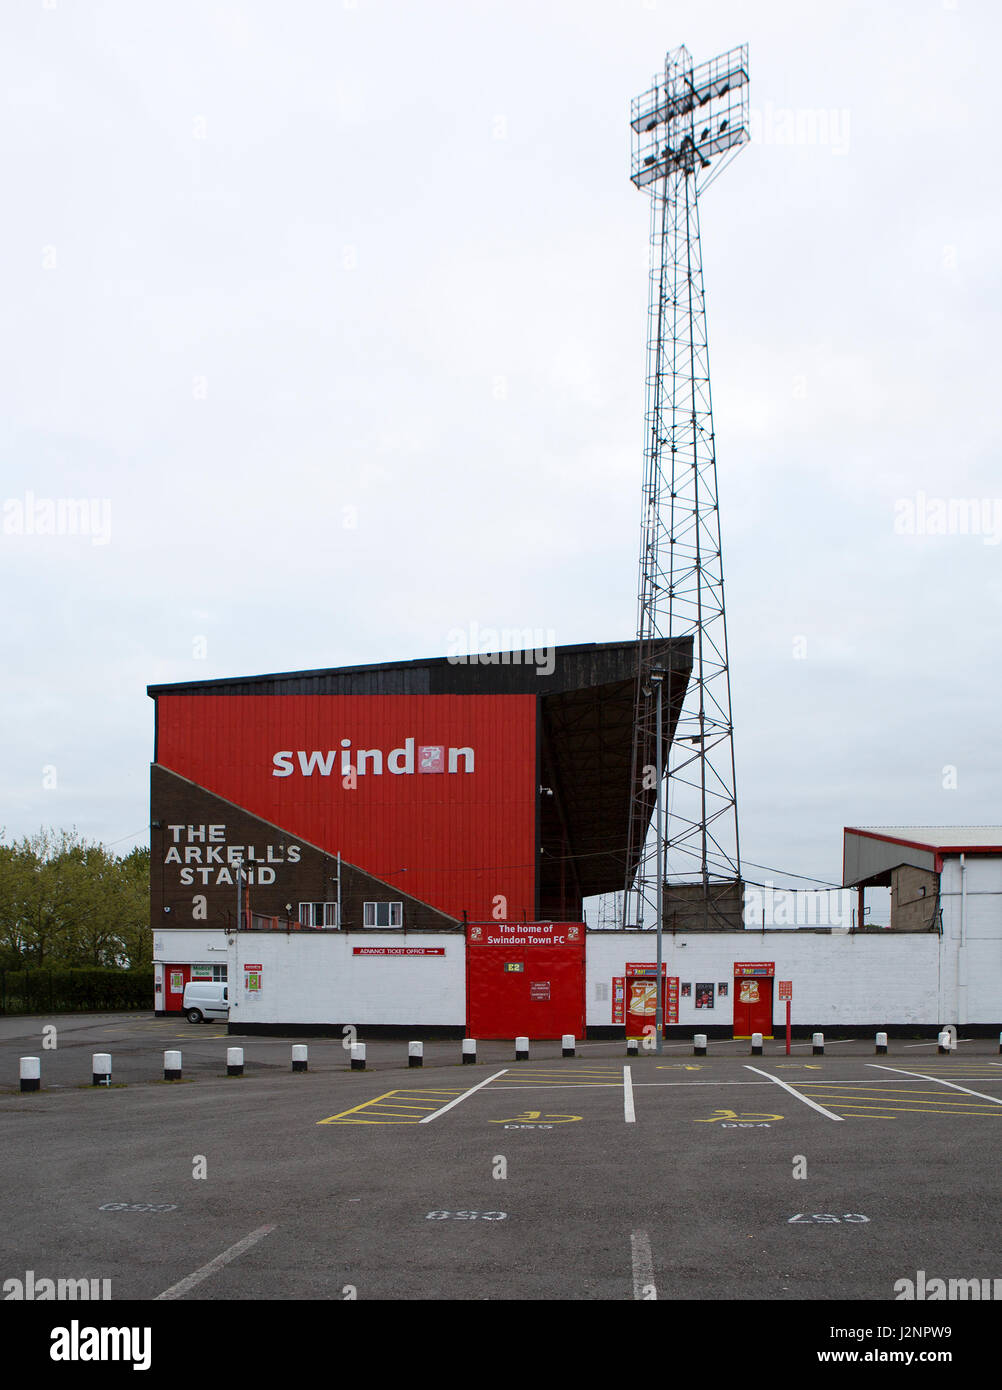 The County Ground - Home of Swindon Town Football Club, STFC have just been relegated to division two - Stock Image